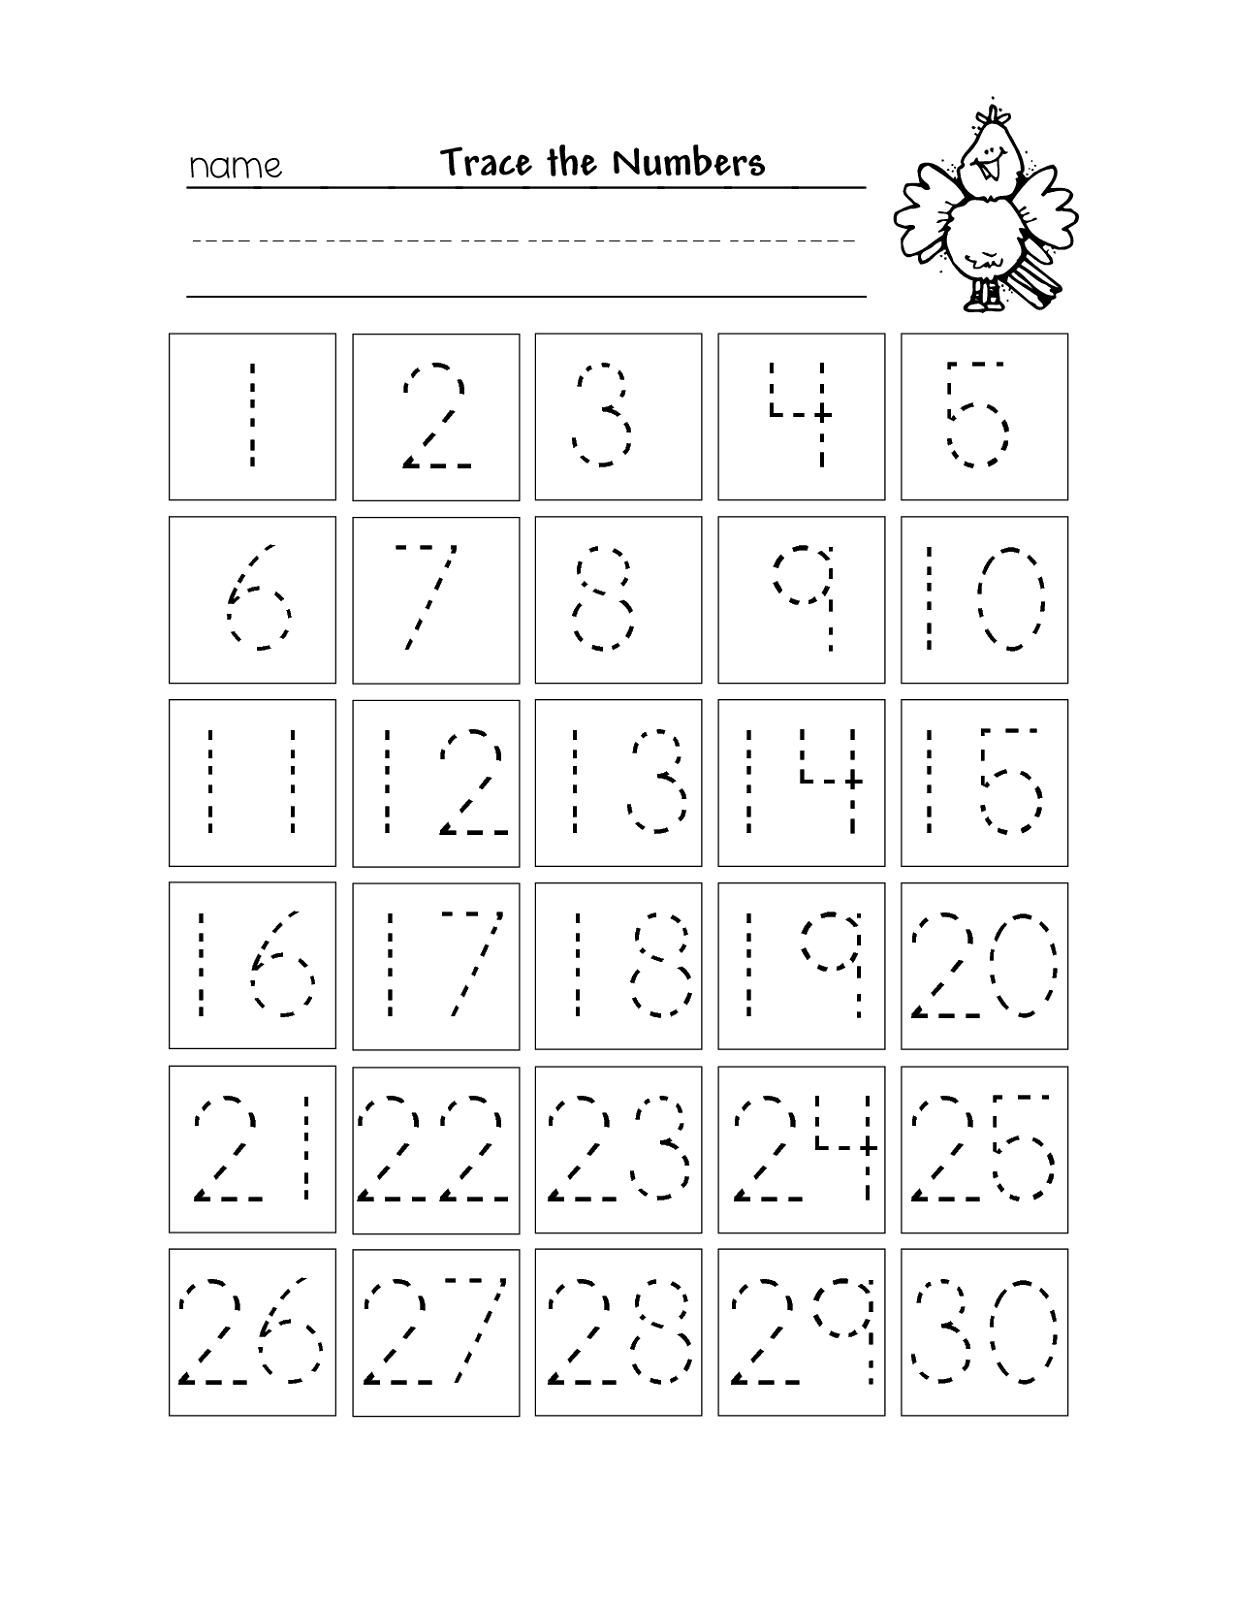 Trace The Numbers 1-30 | Kiddo Shelter | Kids Worksheets Printable | Printable Number Tracing Worksheets For Kindergarten